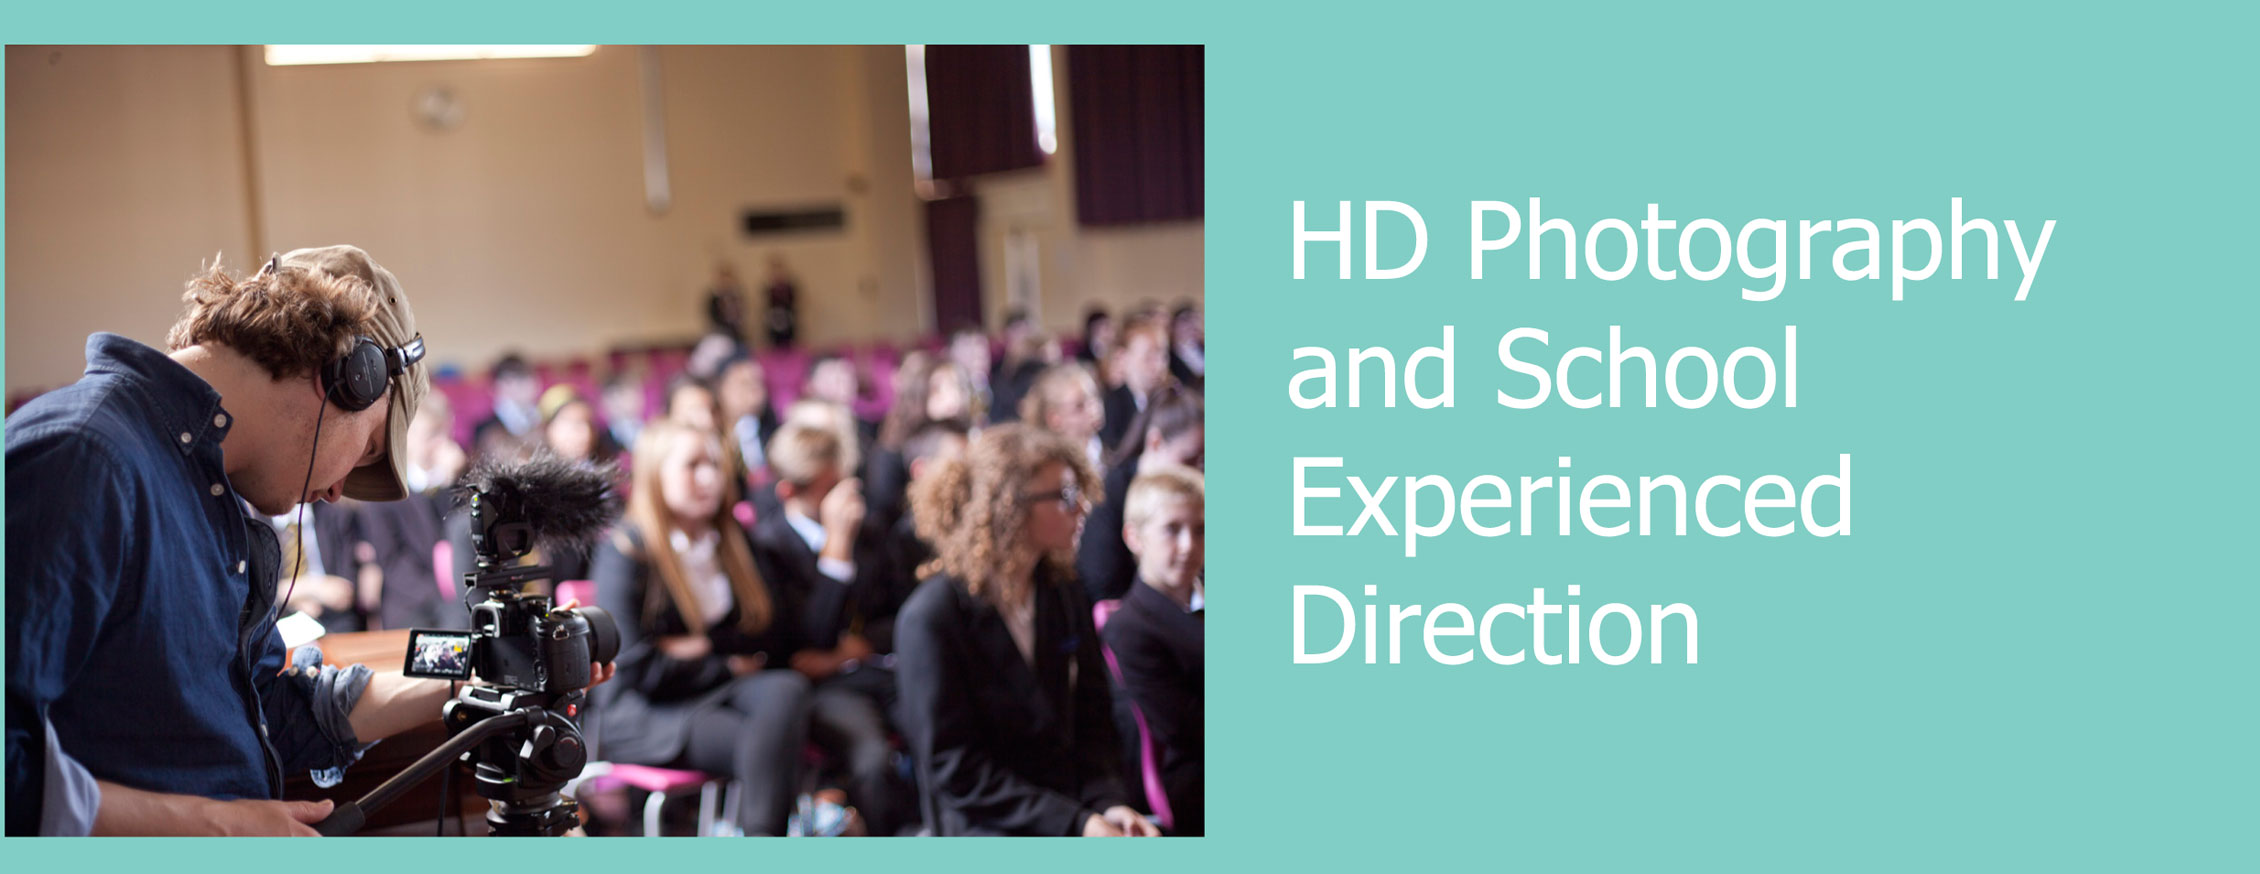 HD photography and school experienced direction